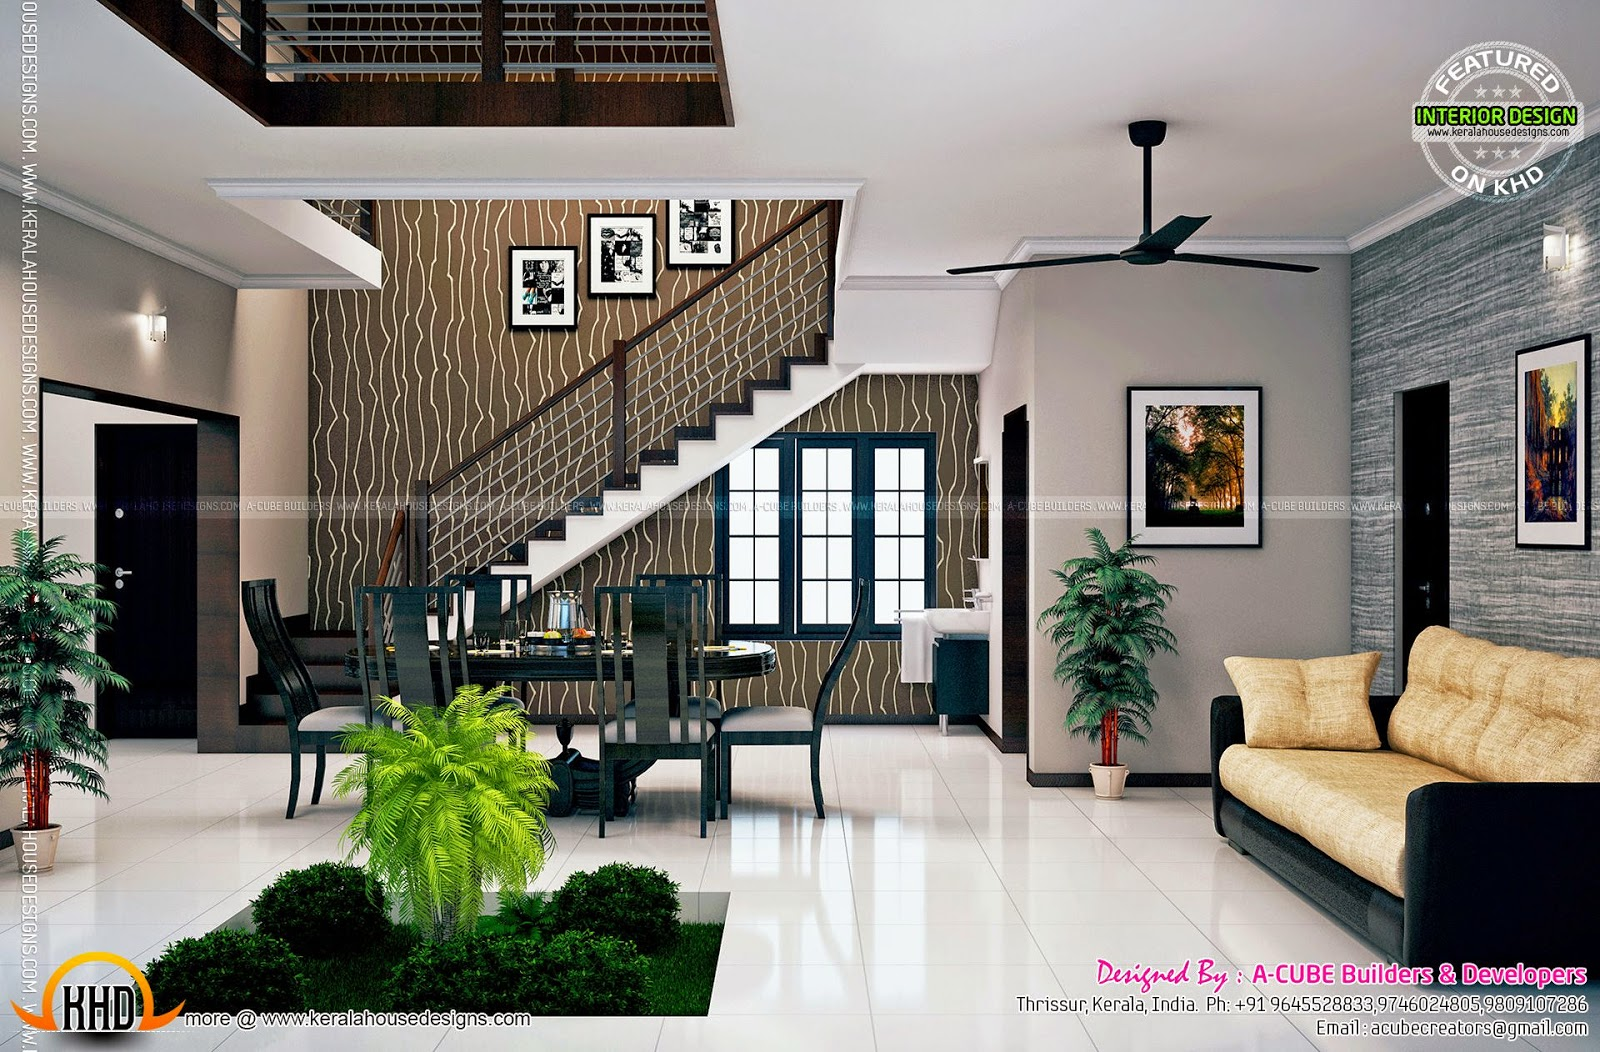 Kerala interior design ideas kerala home design and for Dining room designs kerala